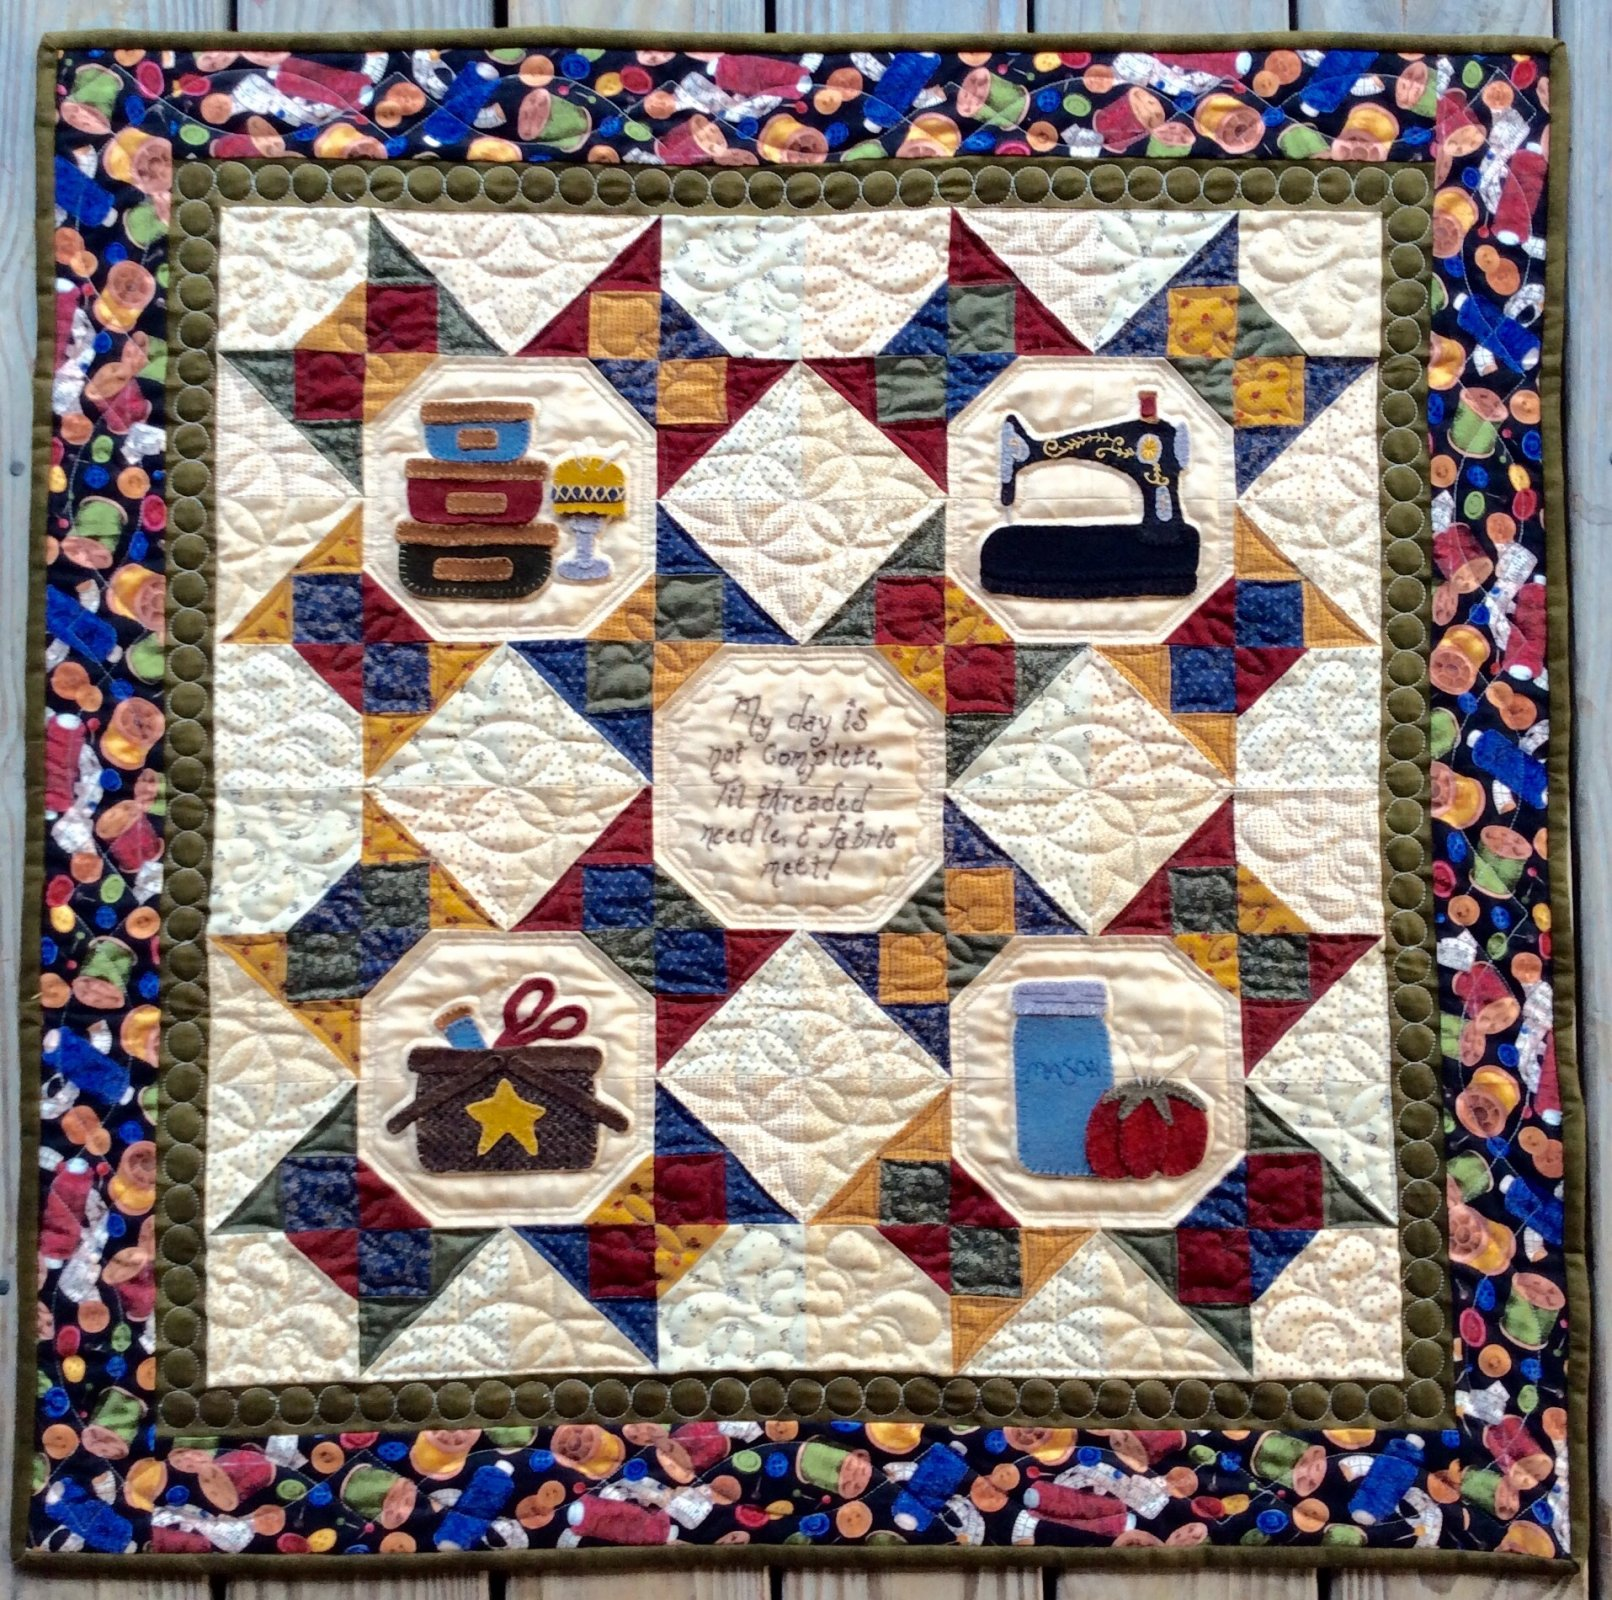 Calico Patch Designs : quilts n calicoes - Adamdwight.com